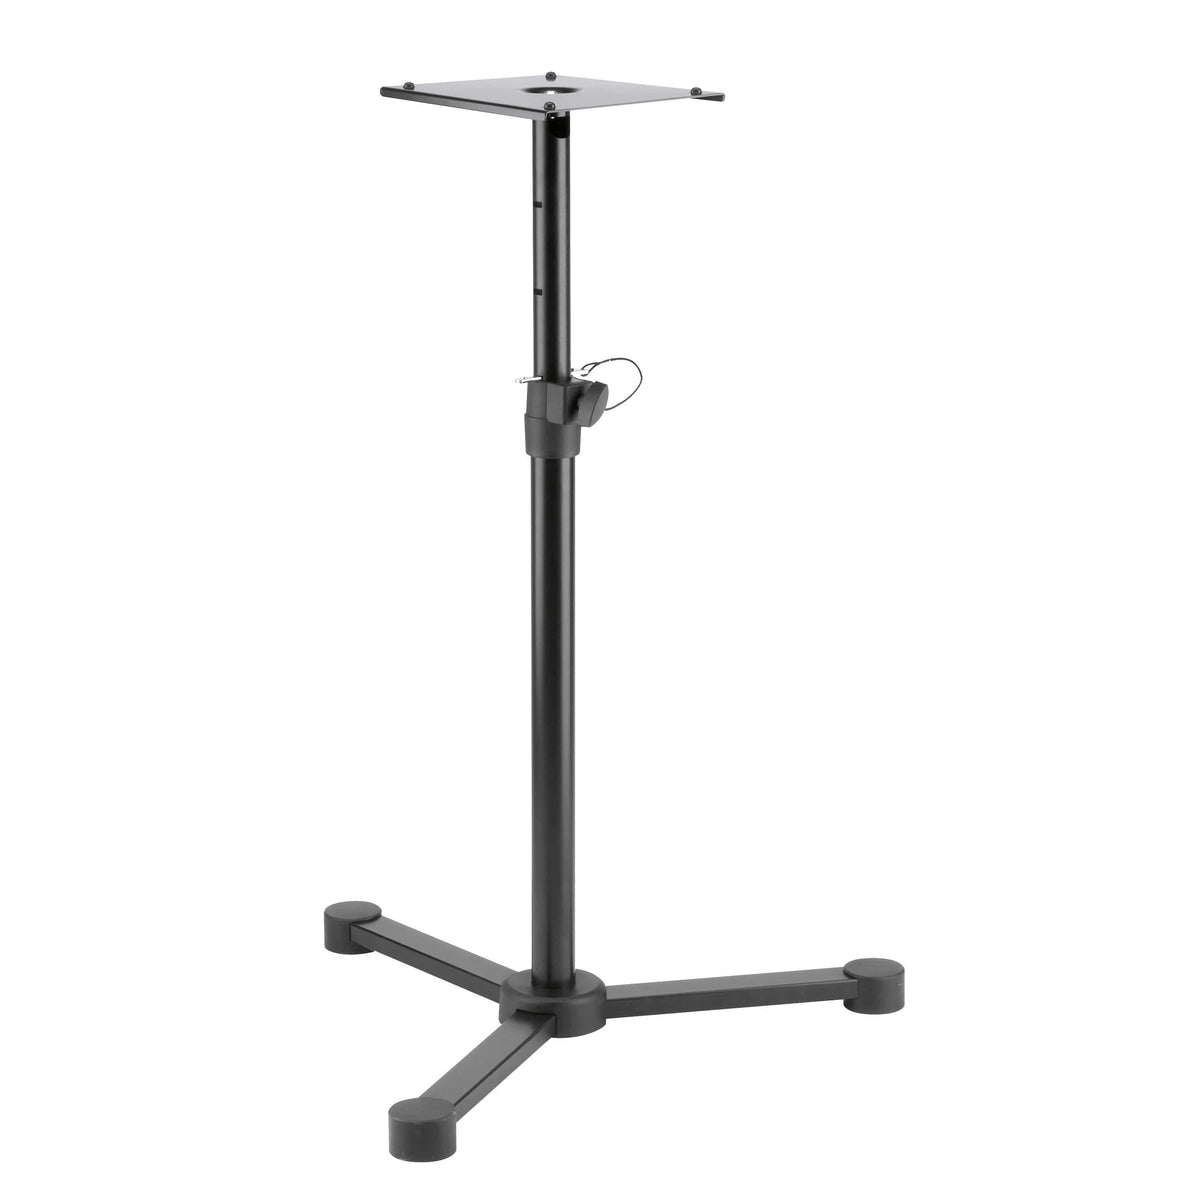 König & Meyer Accessories K&M 26720 Monitor stand